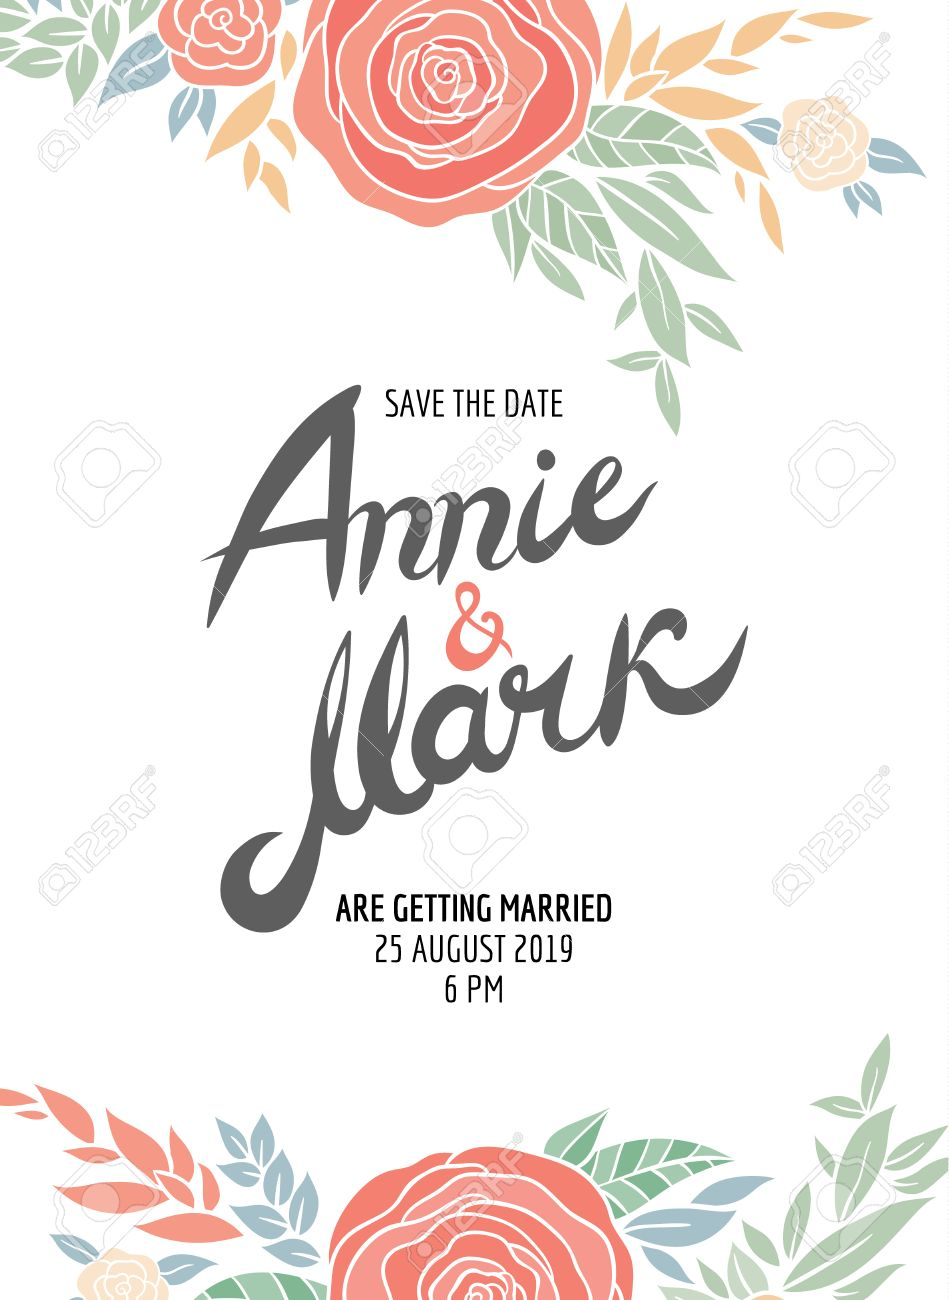 Invitation Wedding Card With Current Trendy Flowers Vector – Wedding Card Template